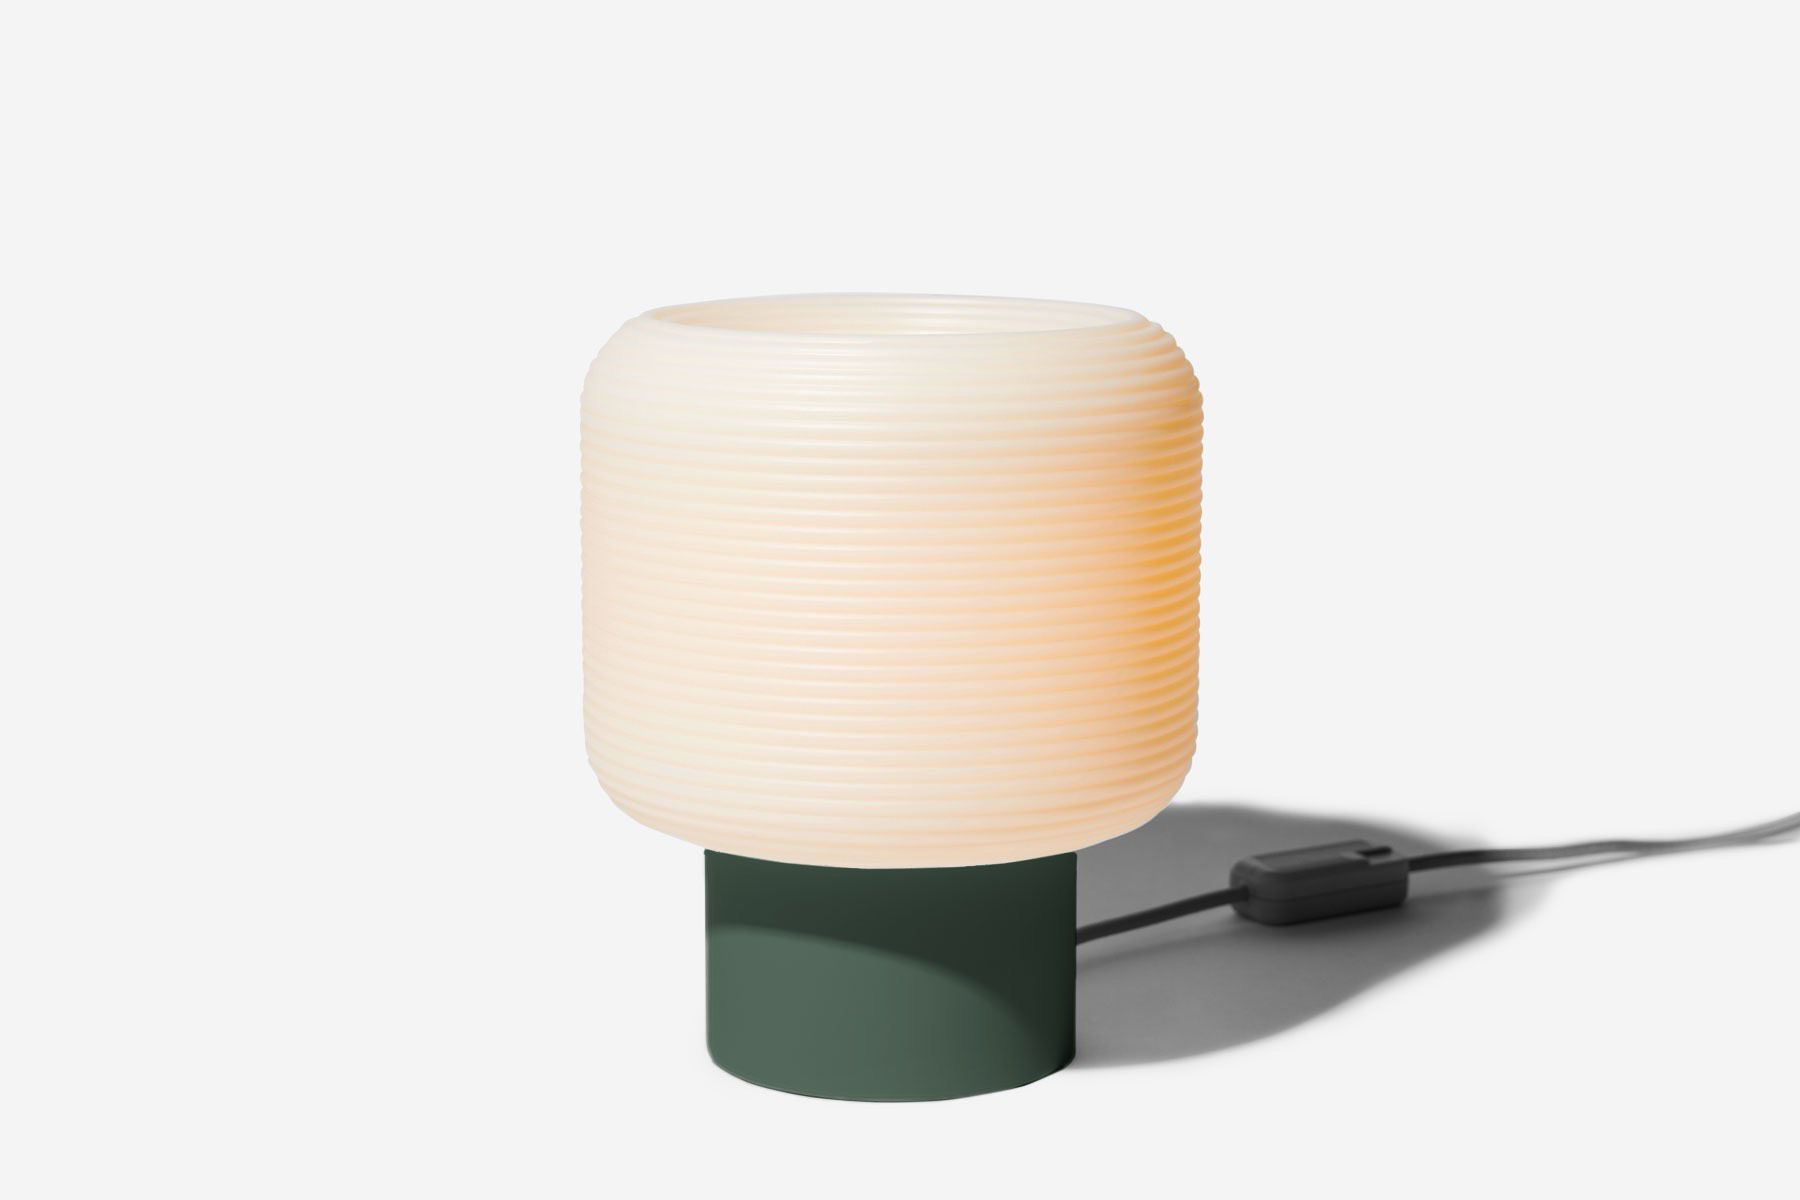 Table lamp with forest green base.